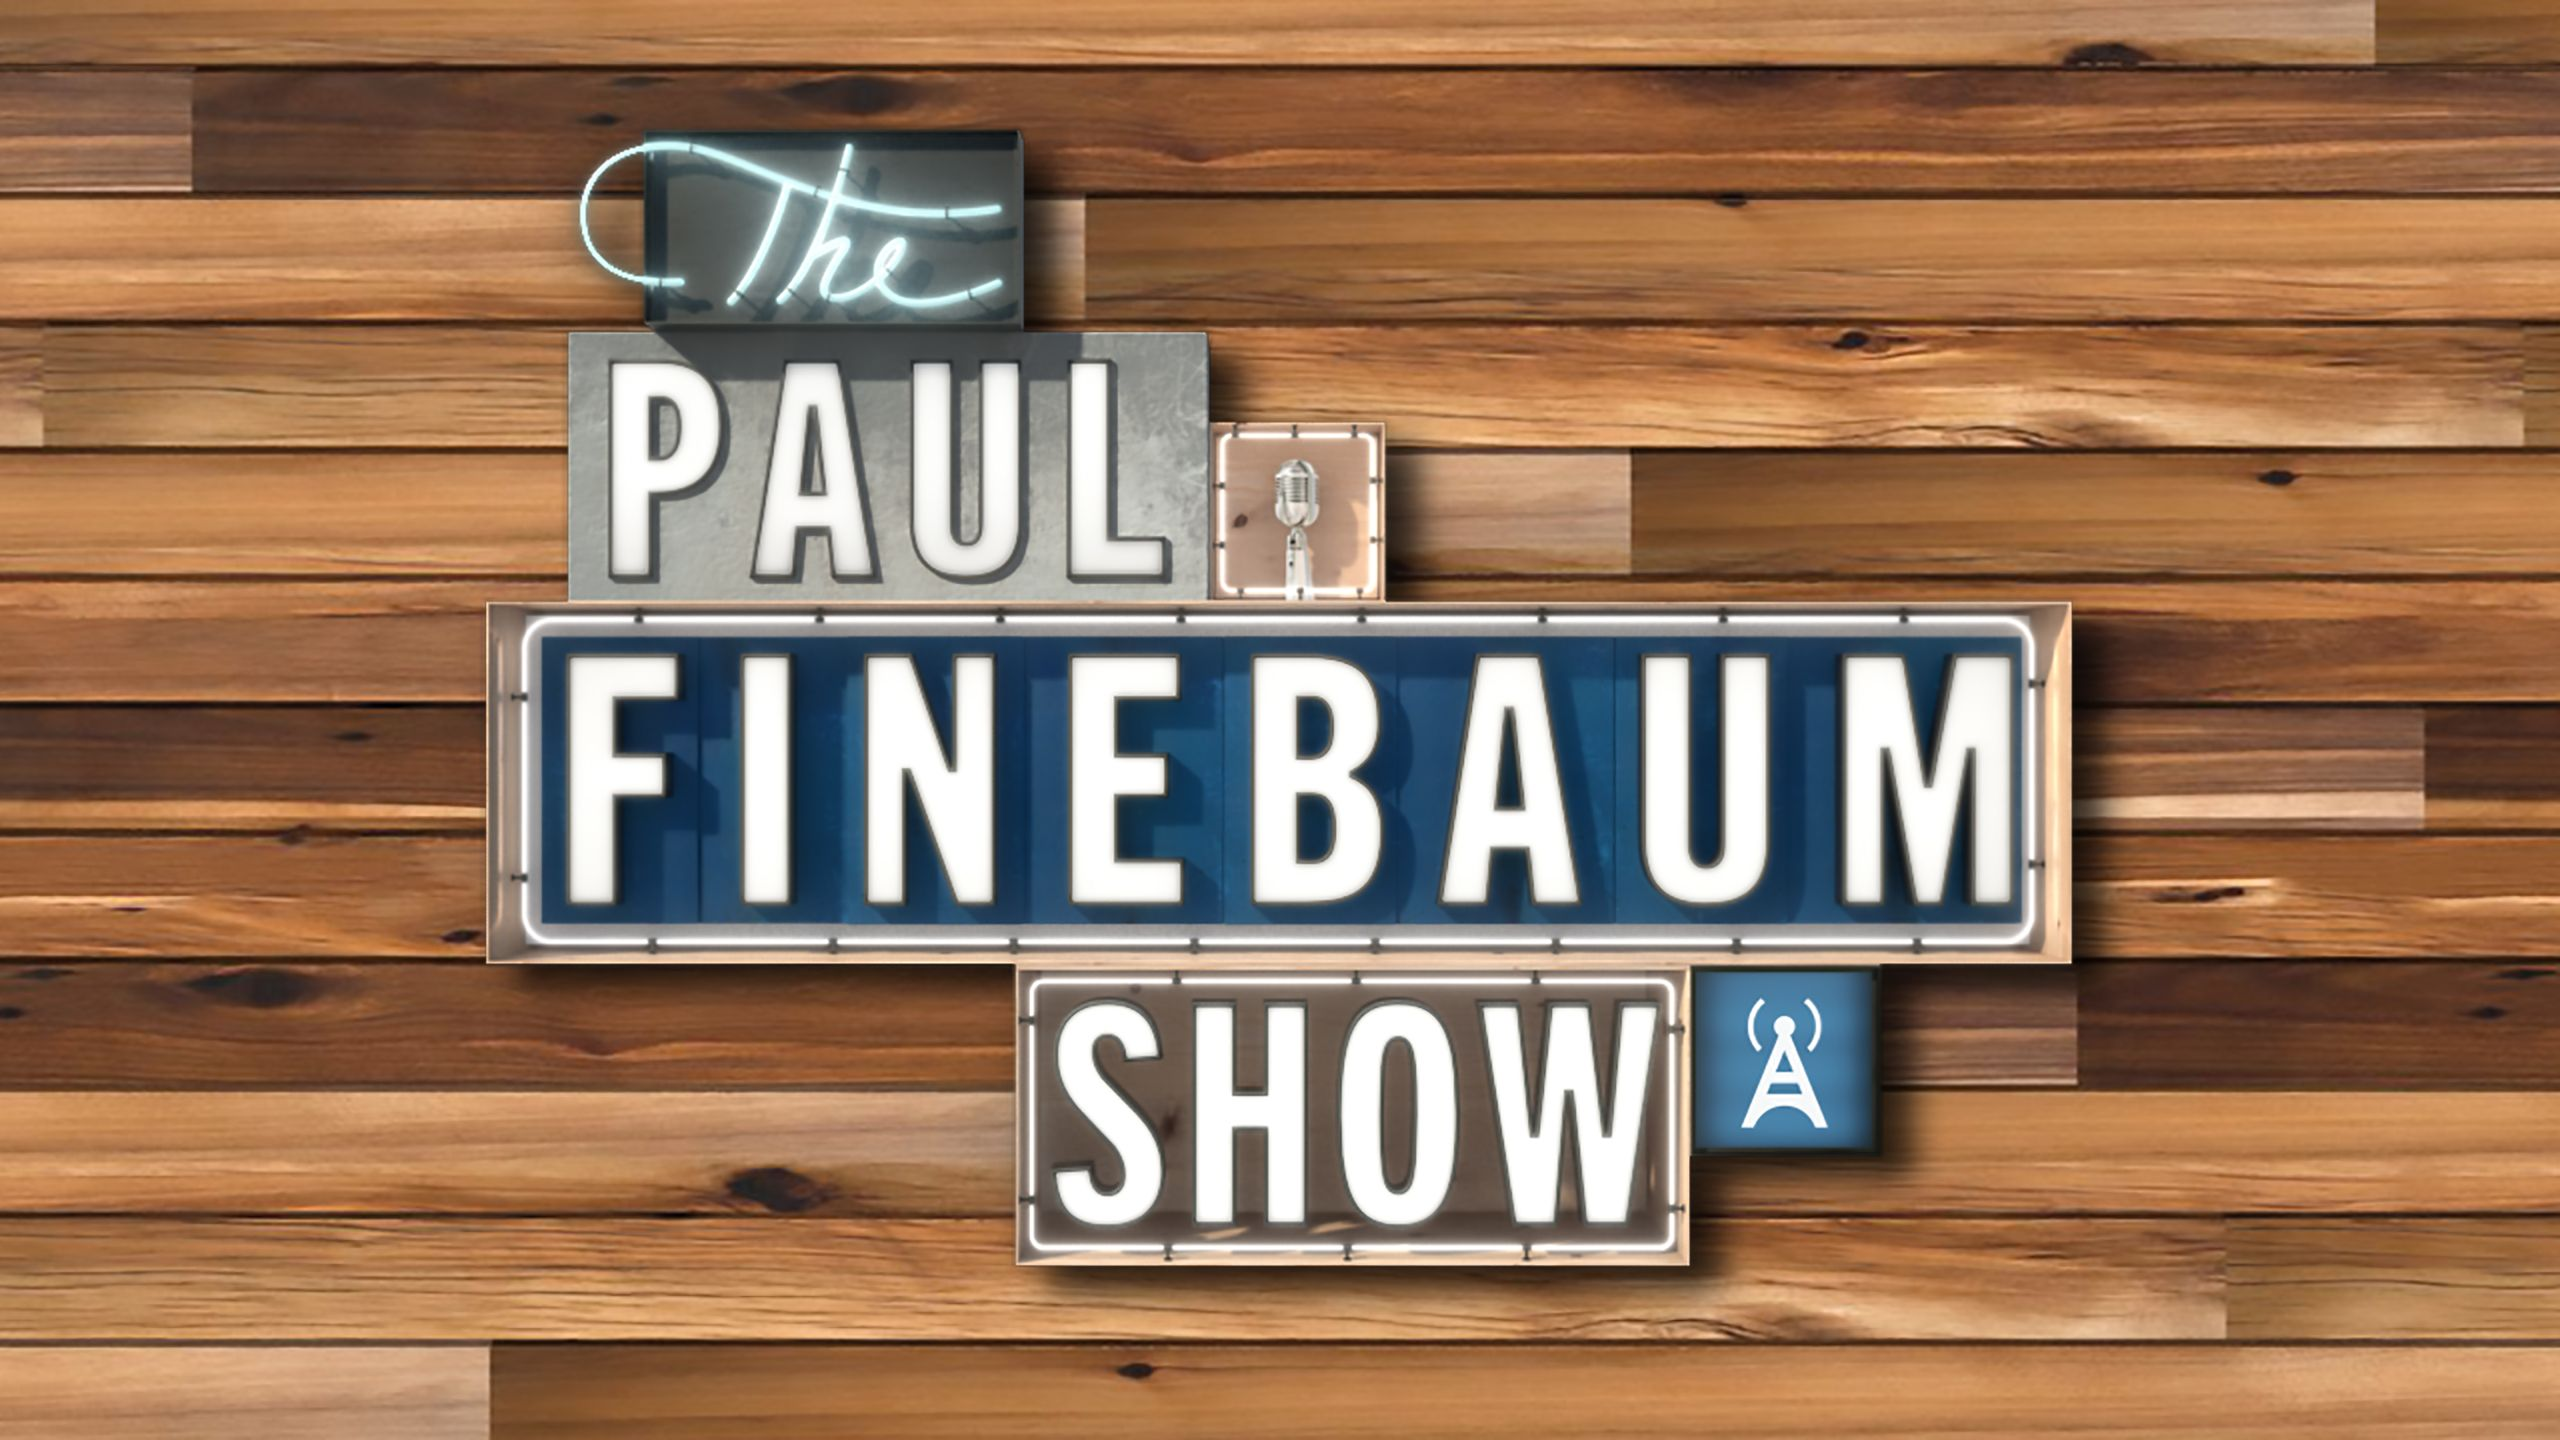 Thu, 7/19 - The Paul Finebaum Show Presented by Regions Bank